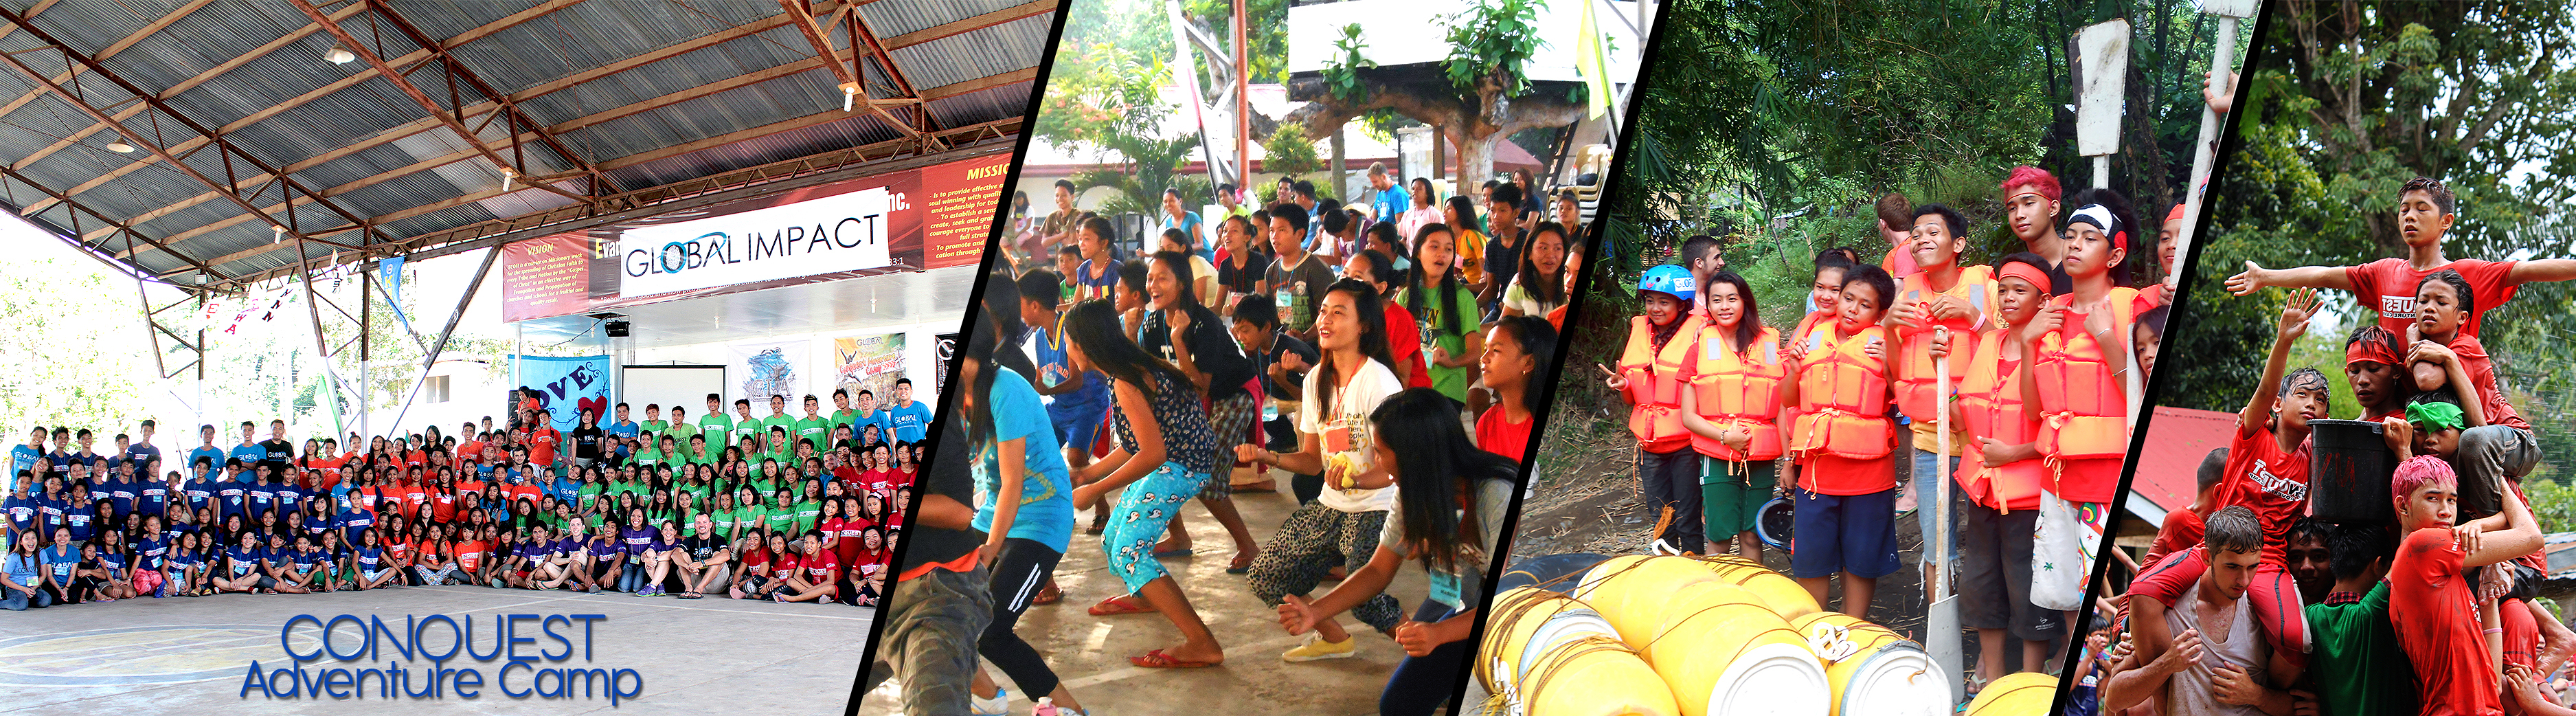 Conquest Adventure Camp - Youth Evangelism Camp